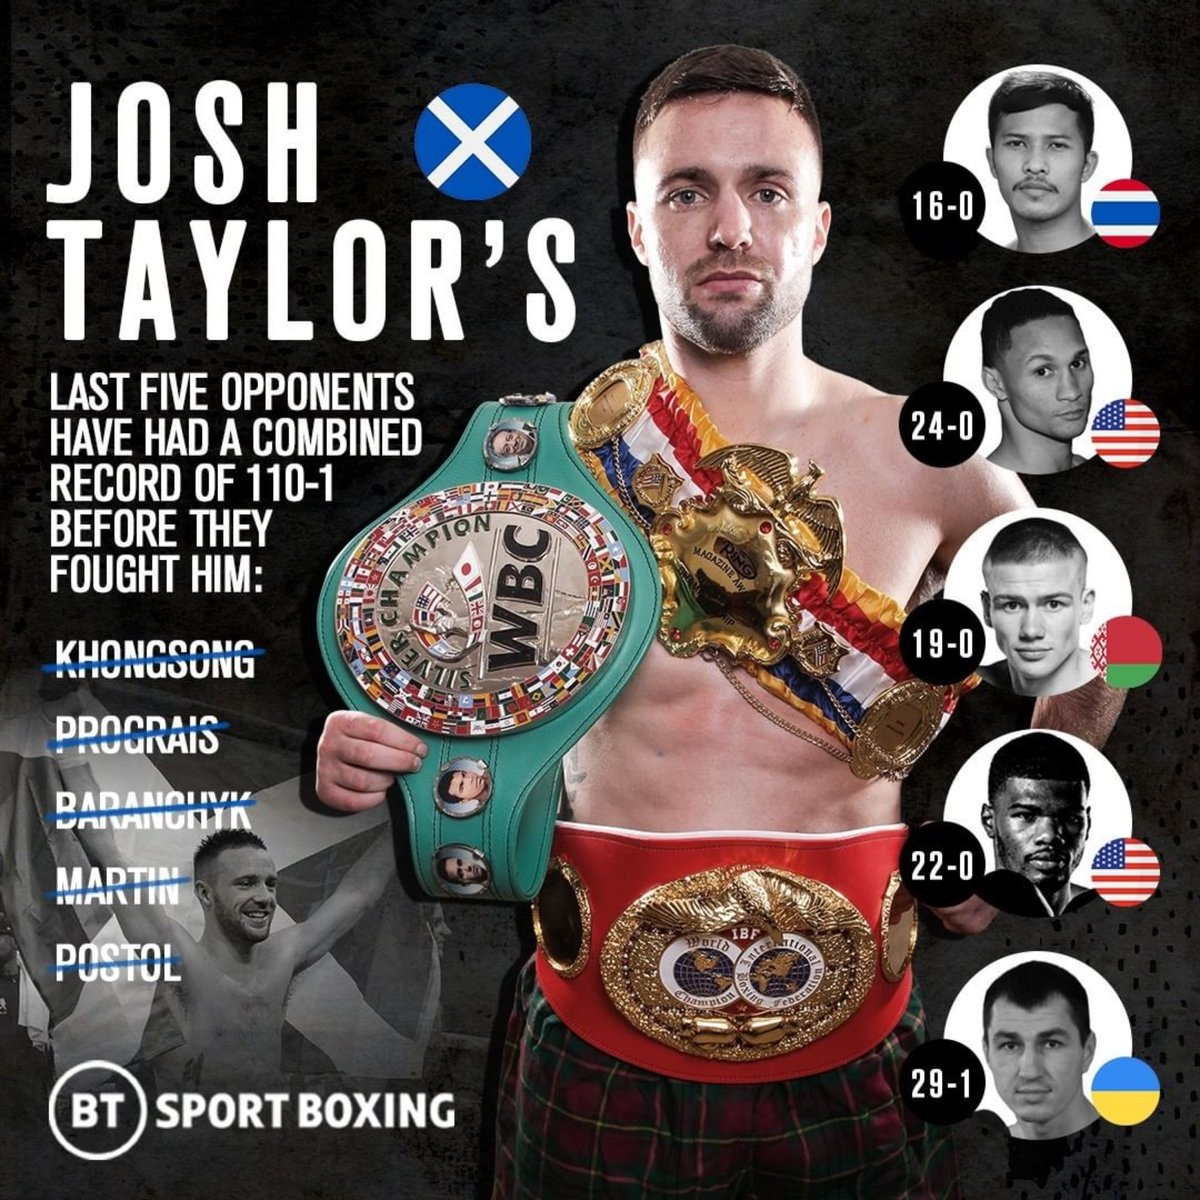 Replying to @BTSportBoxing: Taking on the best is what @JoshTaylorBoxer does 😤